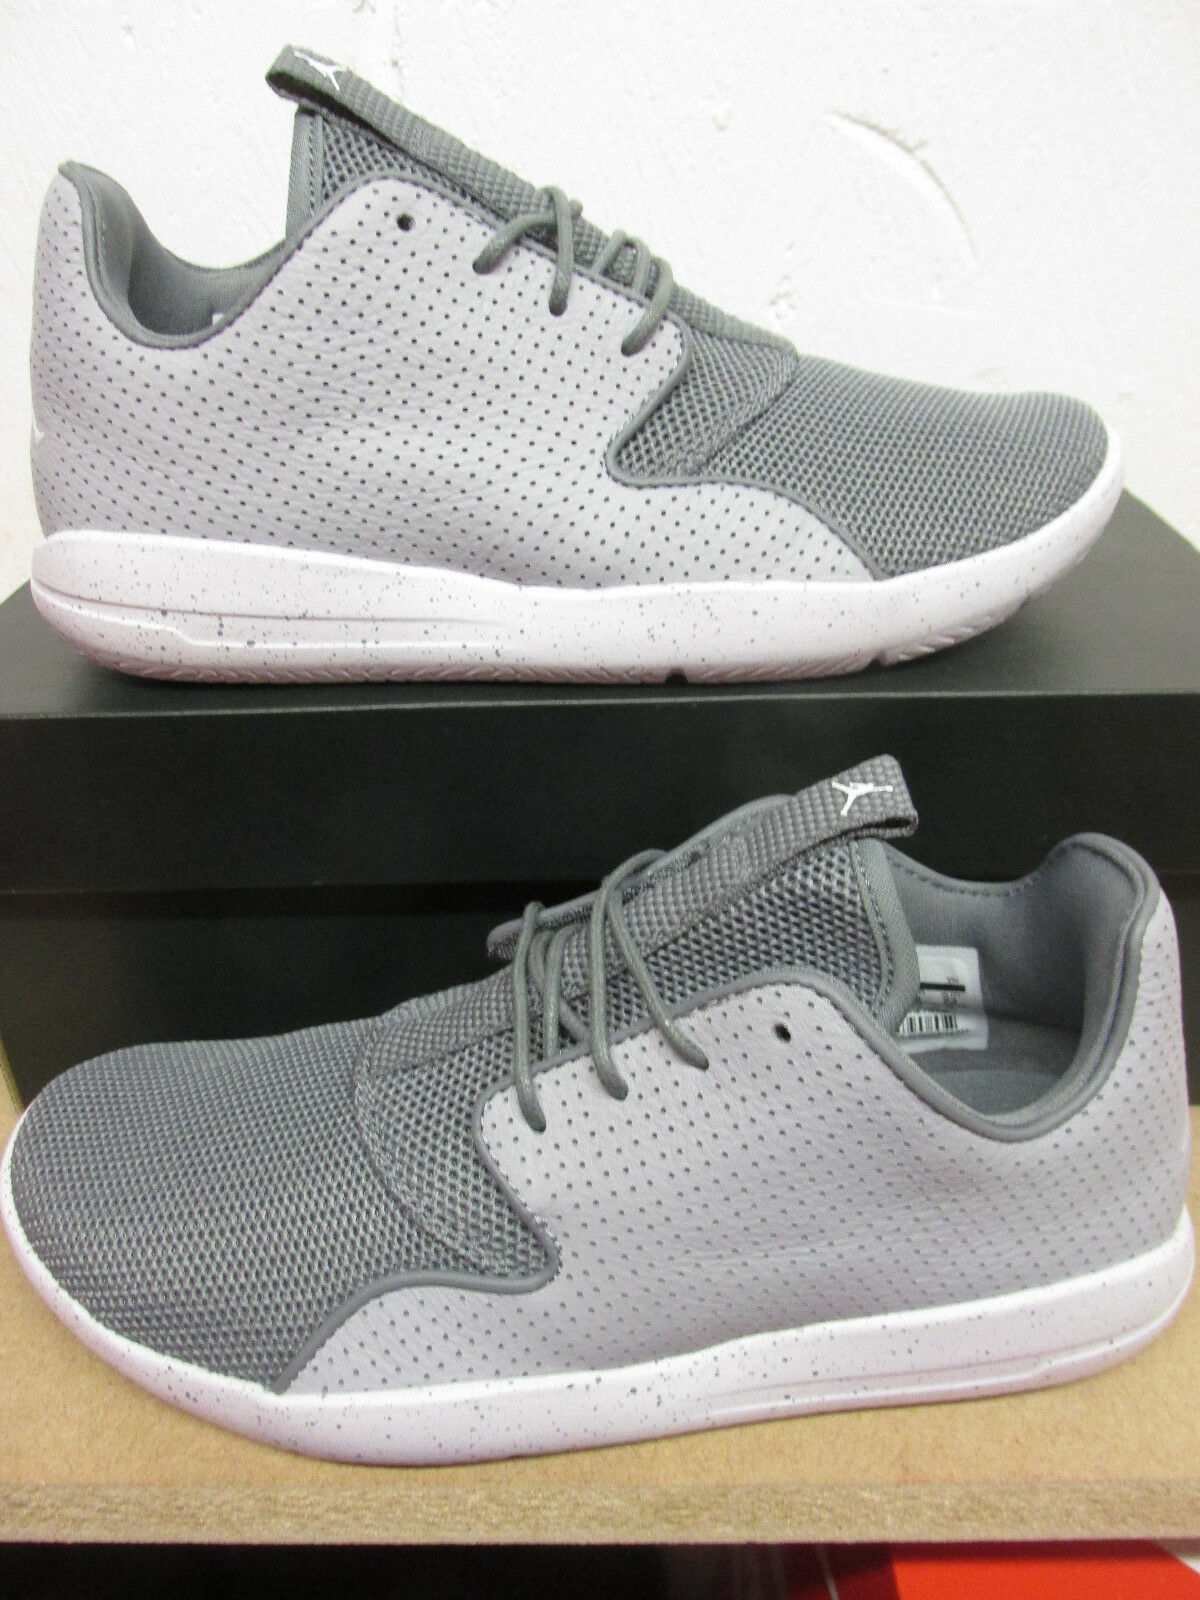 nike air jordan eclipse sneakers BG trainers 724042 023 sneakers eclipse shoes 9accf5